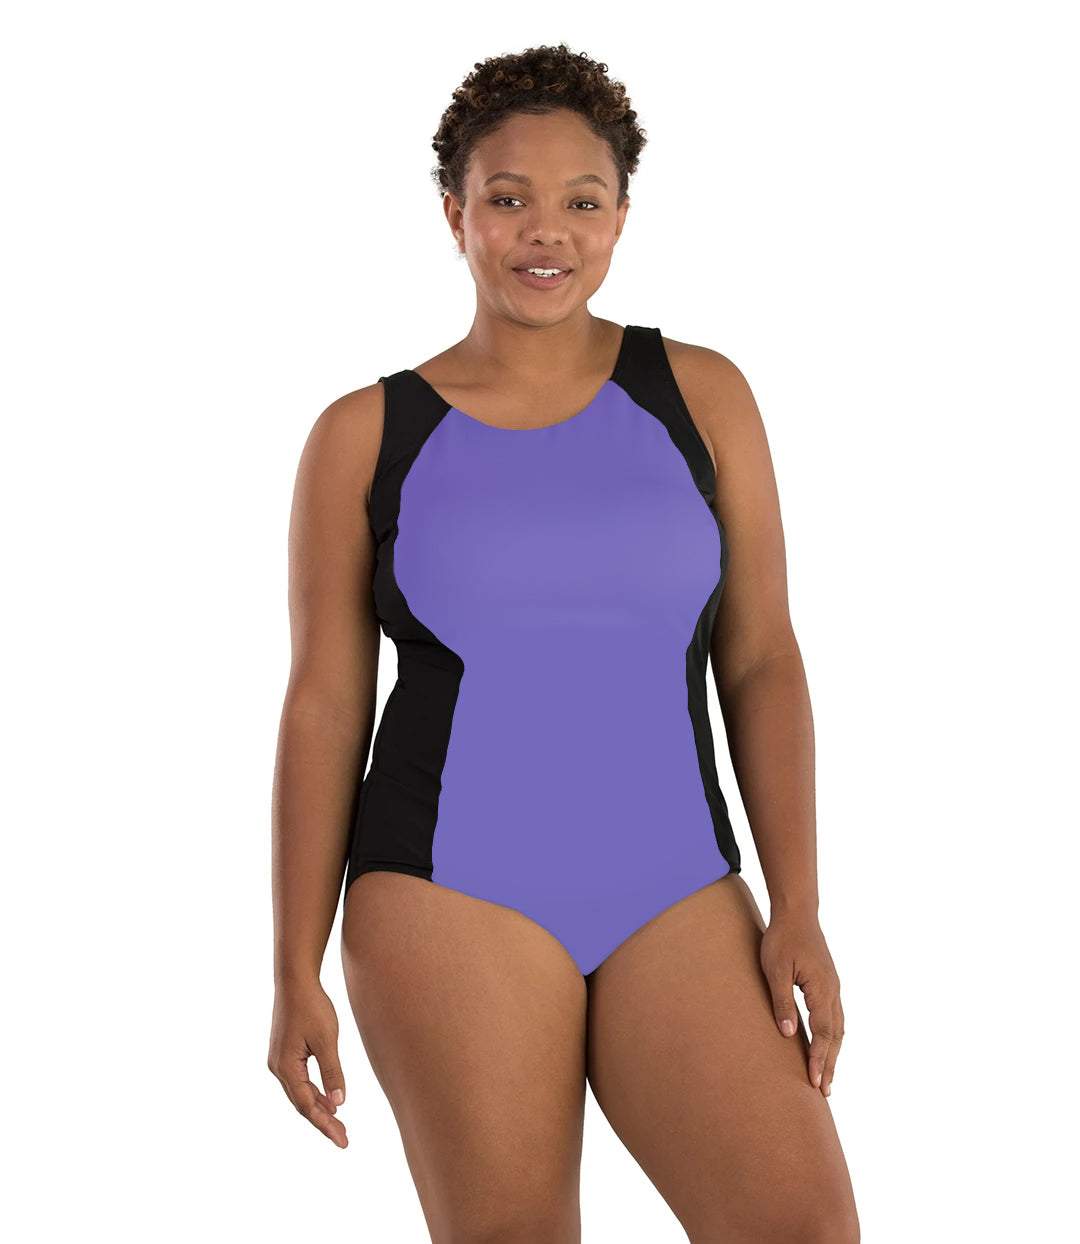 Aquasport Colorblock Tanksuit Purple and Black-Swim One Piece-SFO Apparel-XL-Purple/Black-JunoActive